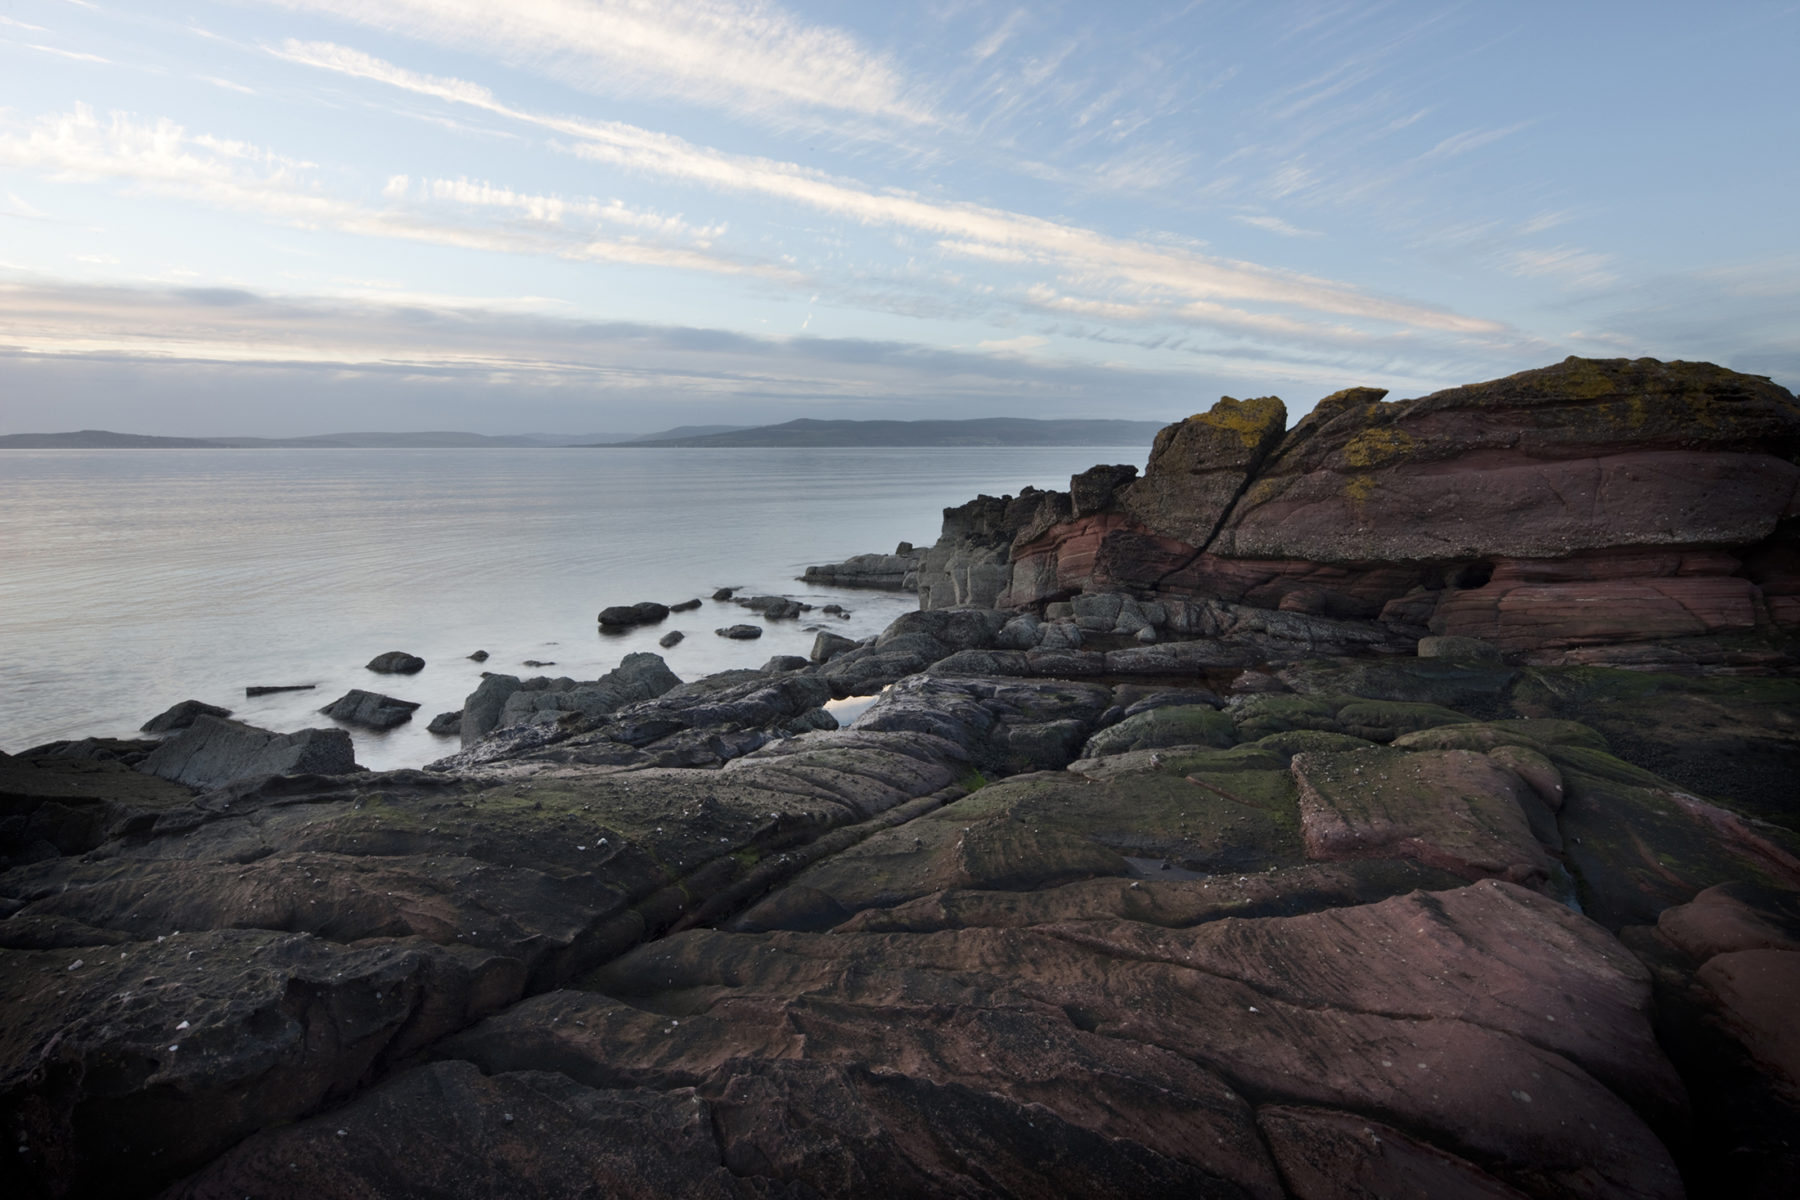 Firth of Clyde sea scape, by McAteer Photograph